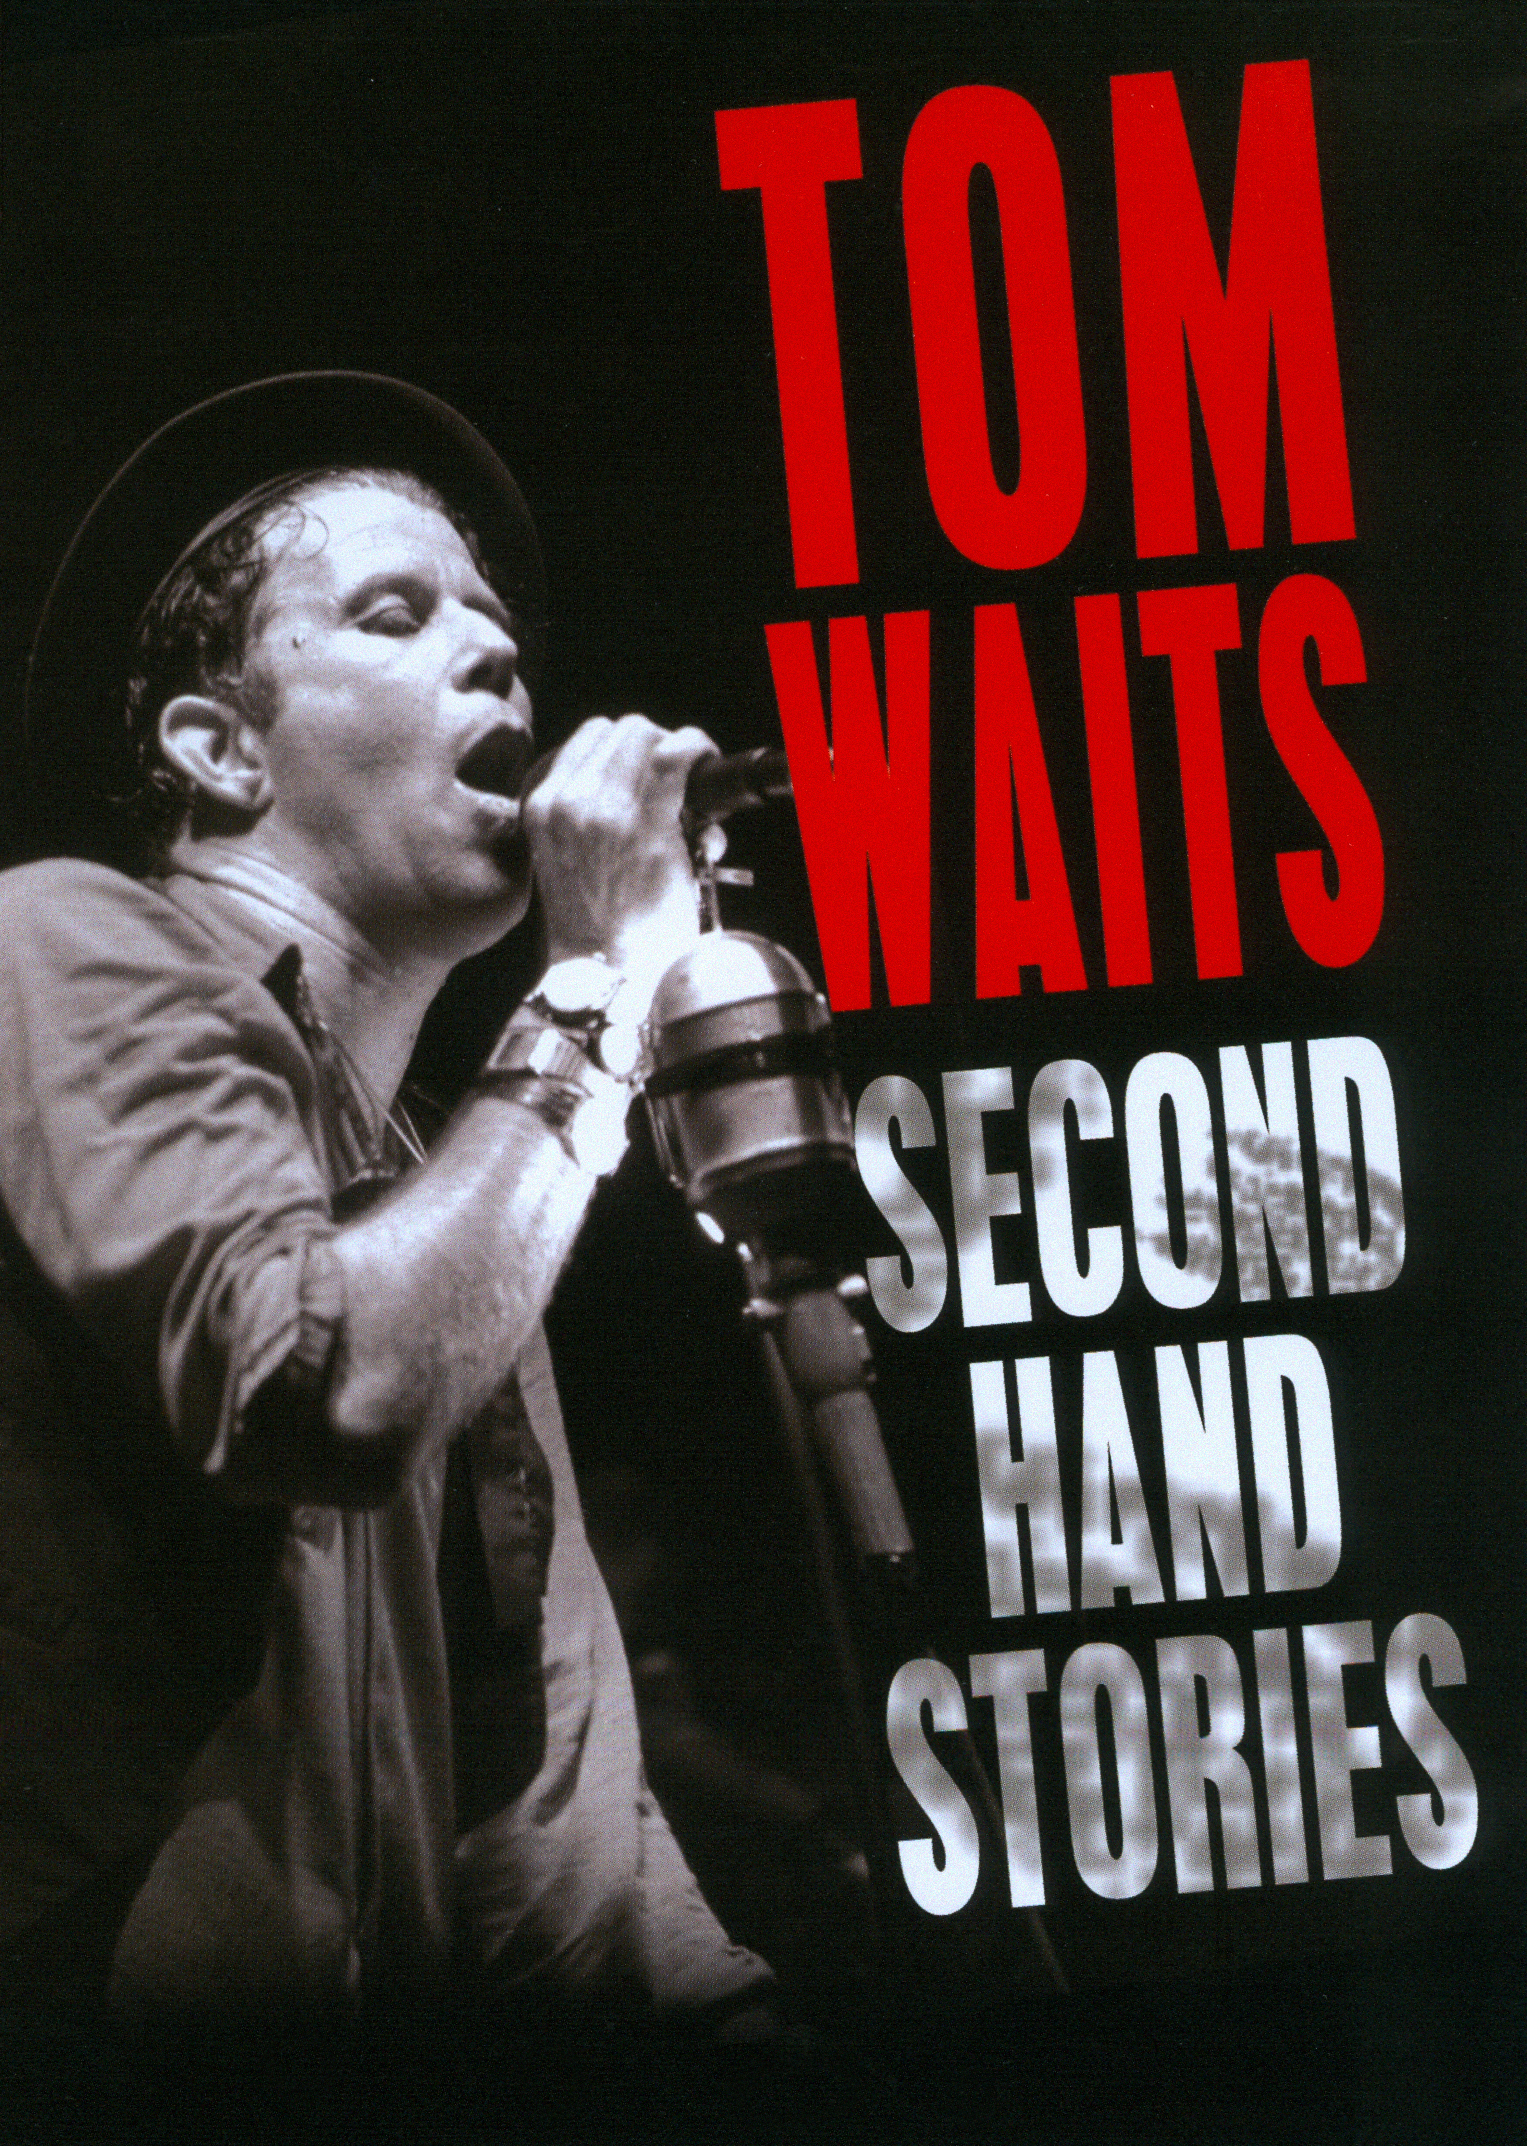 Tom Waits: Second Hand Stories